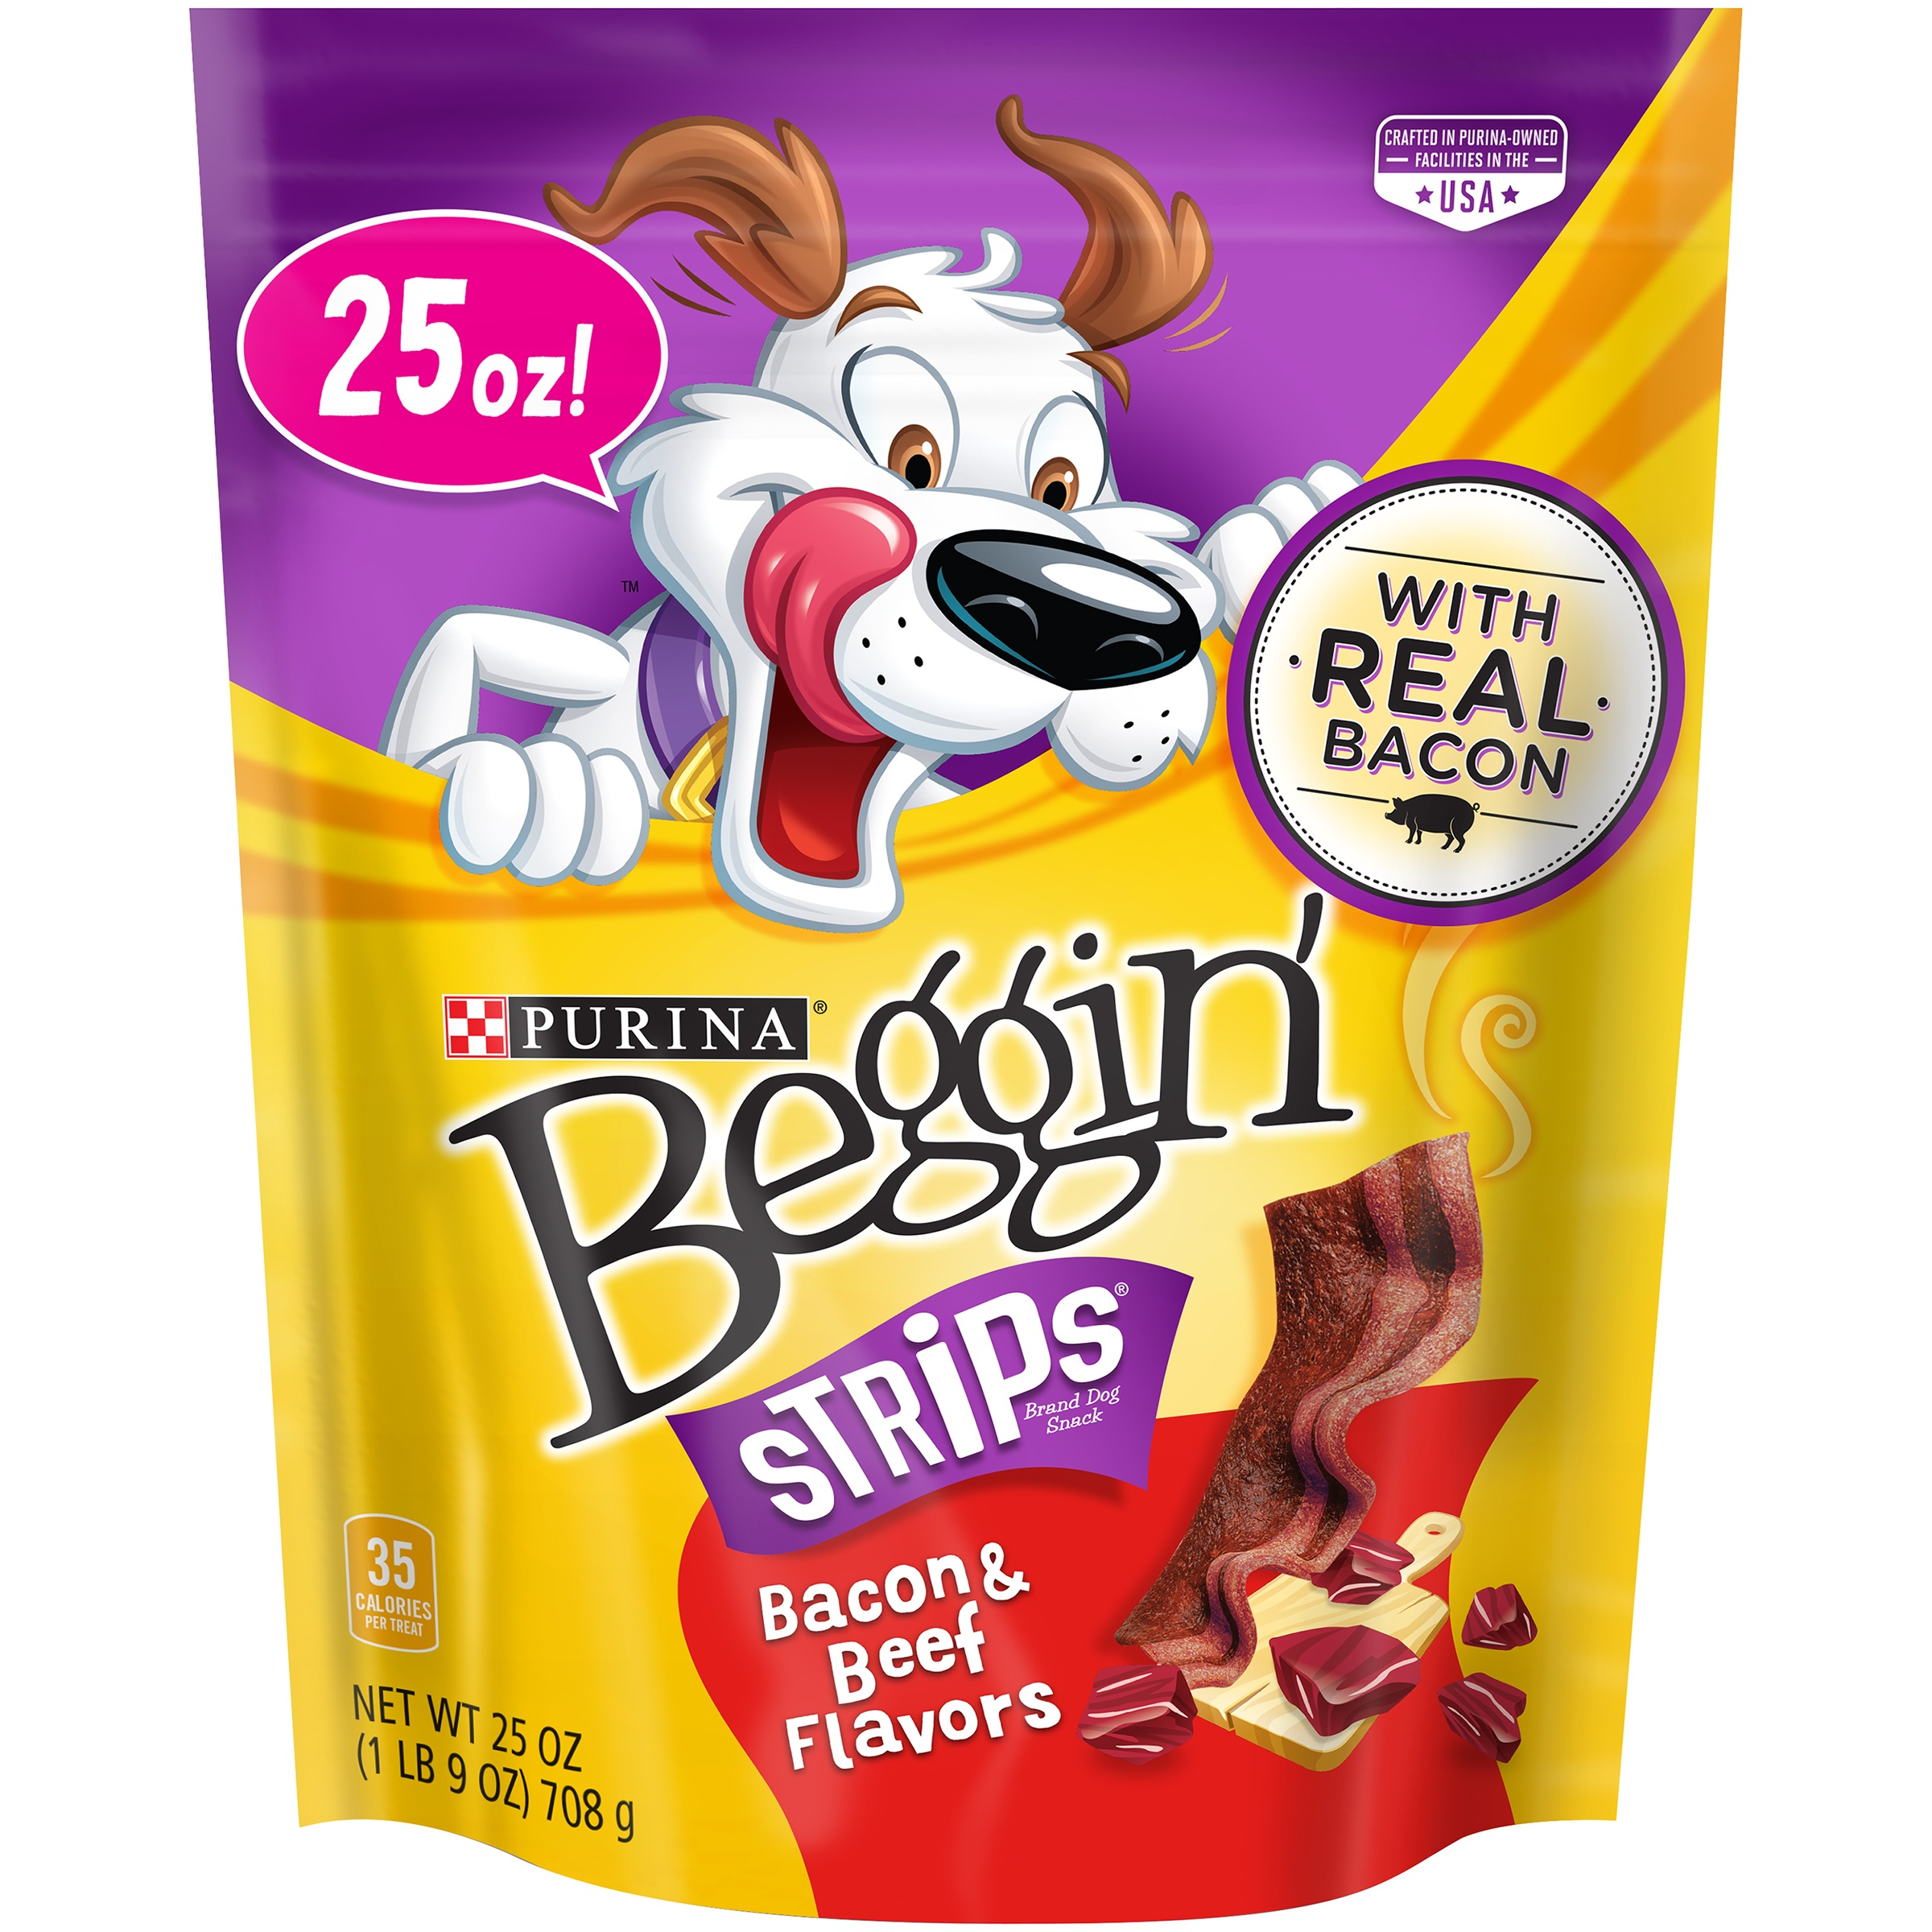 Purina Beggin' Strips Bacon & Beef Flavors Dog Snacks 25 oz. Pouch